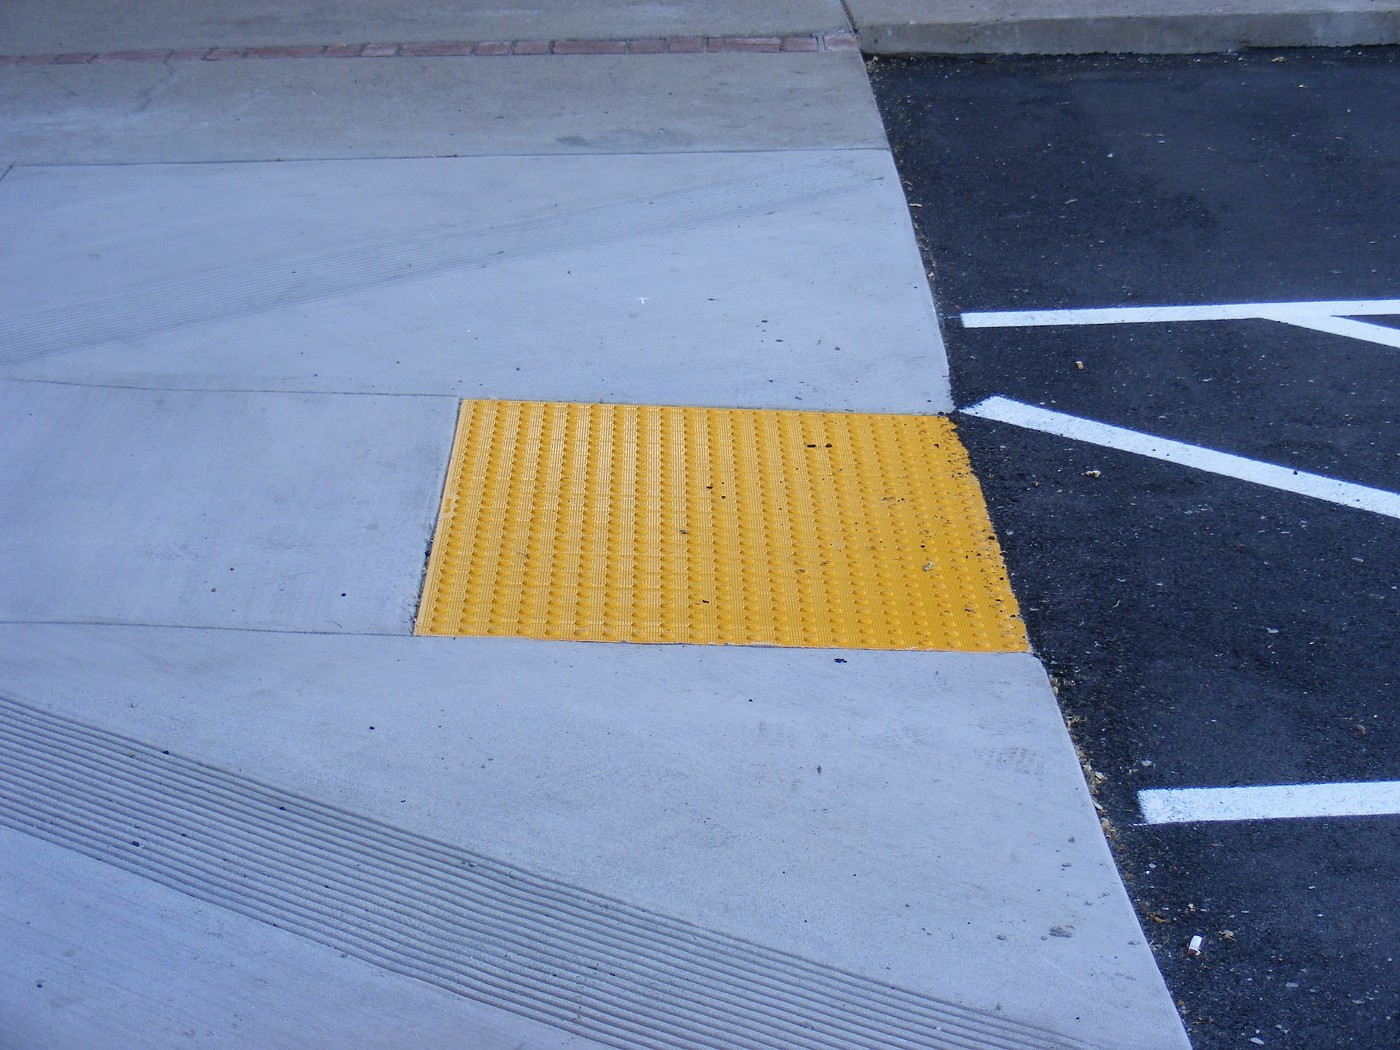 tactile paving on a down ram into a parking lot